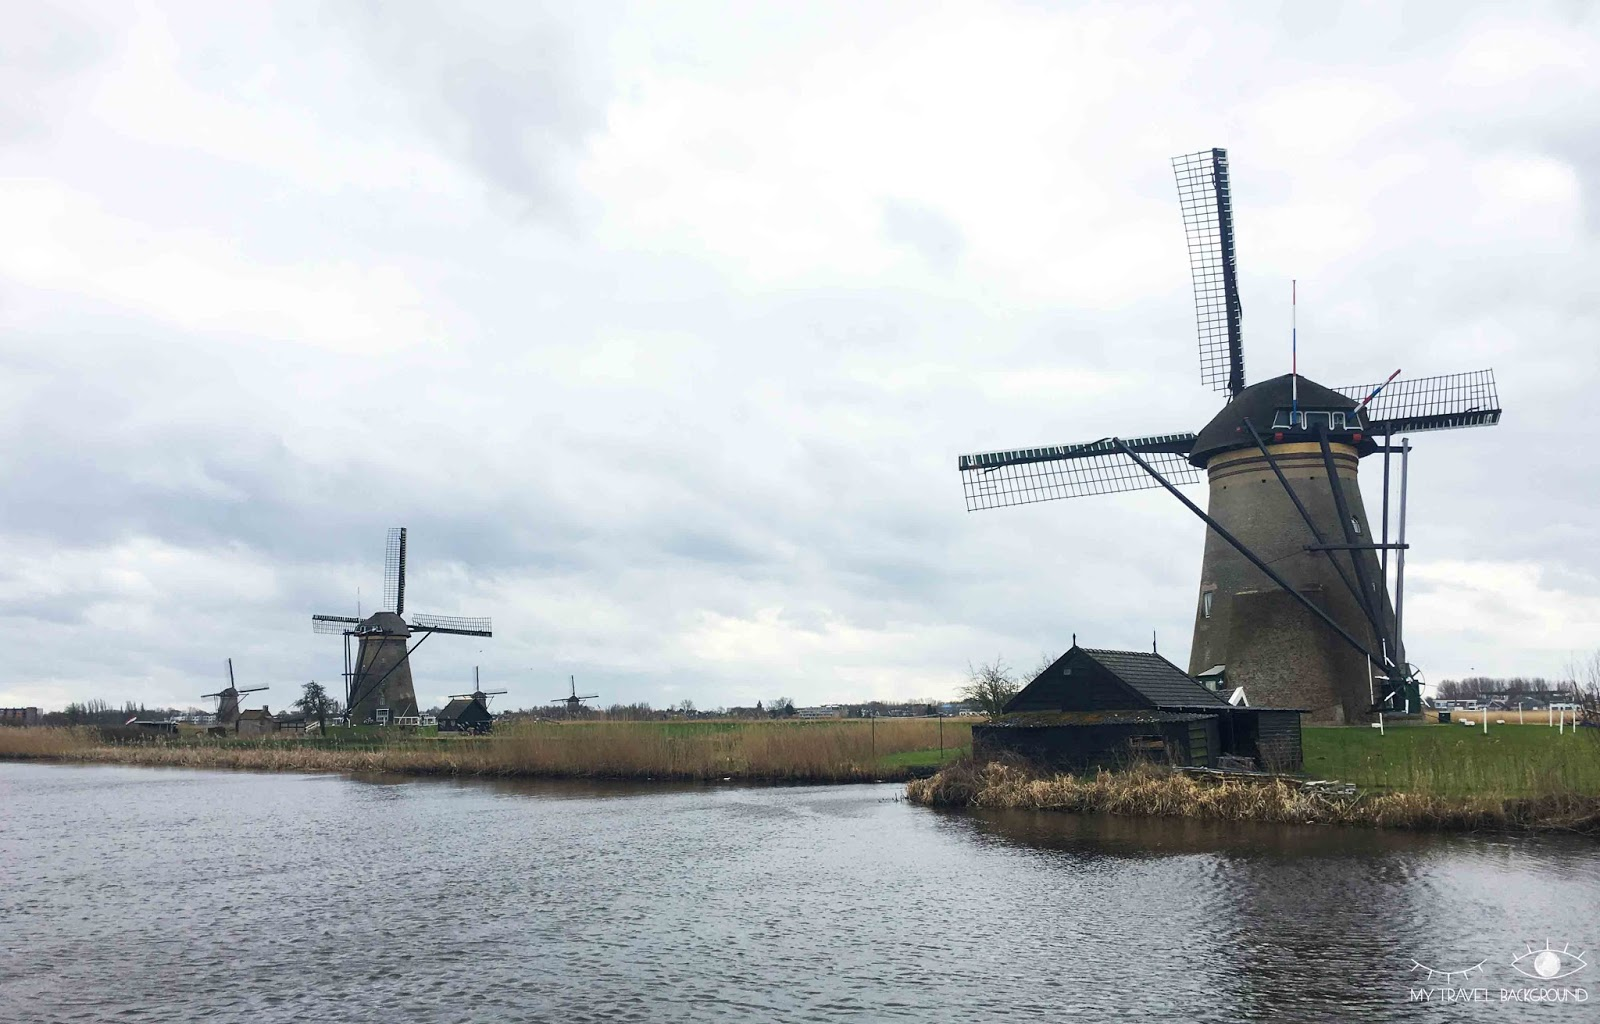 My Travel Background : 1 week-end aux Pays-Bas, de Rotterdam à Delft - Les moulins de Kinderdijk